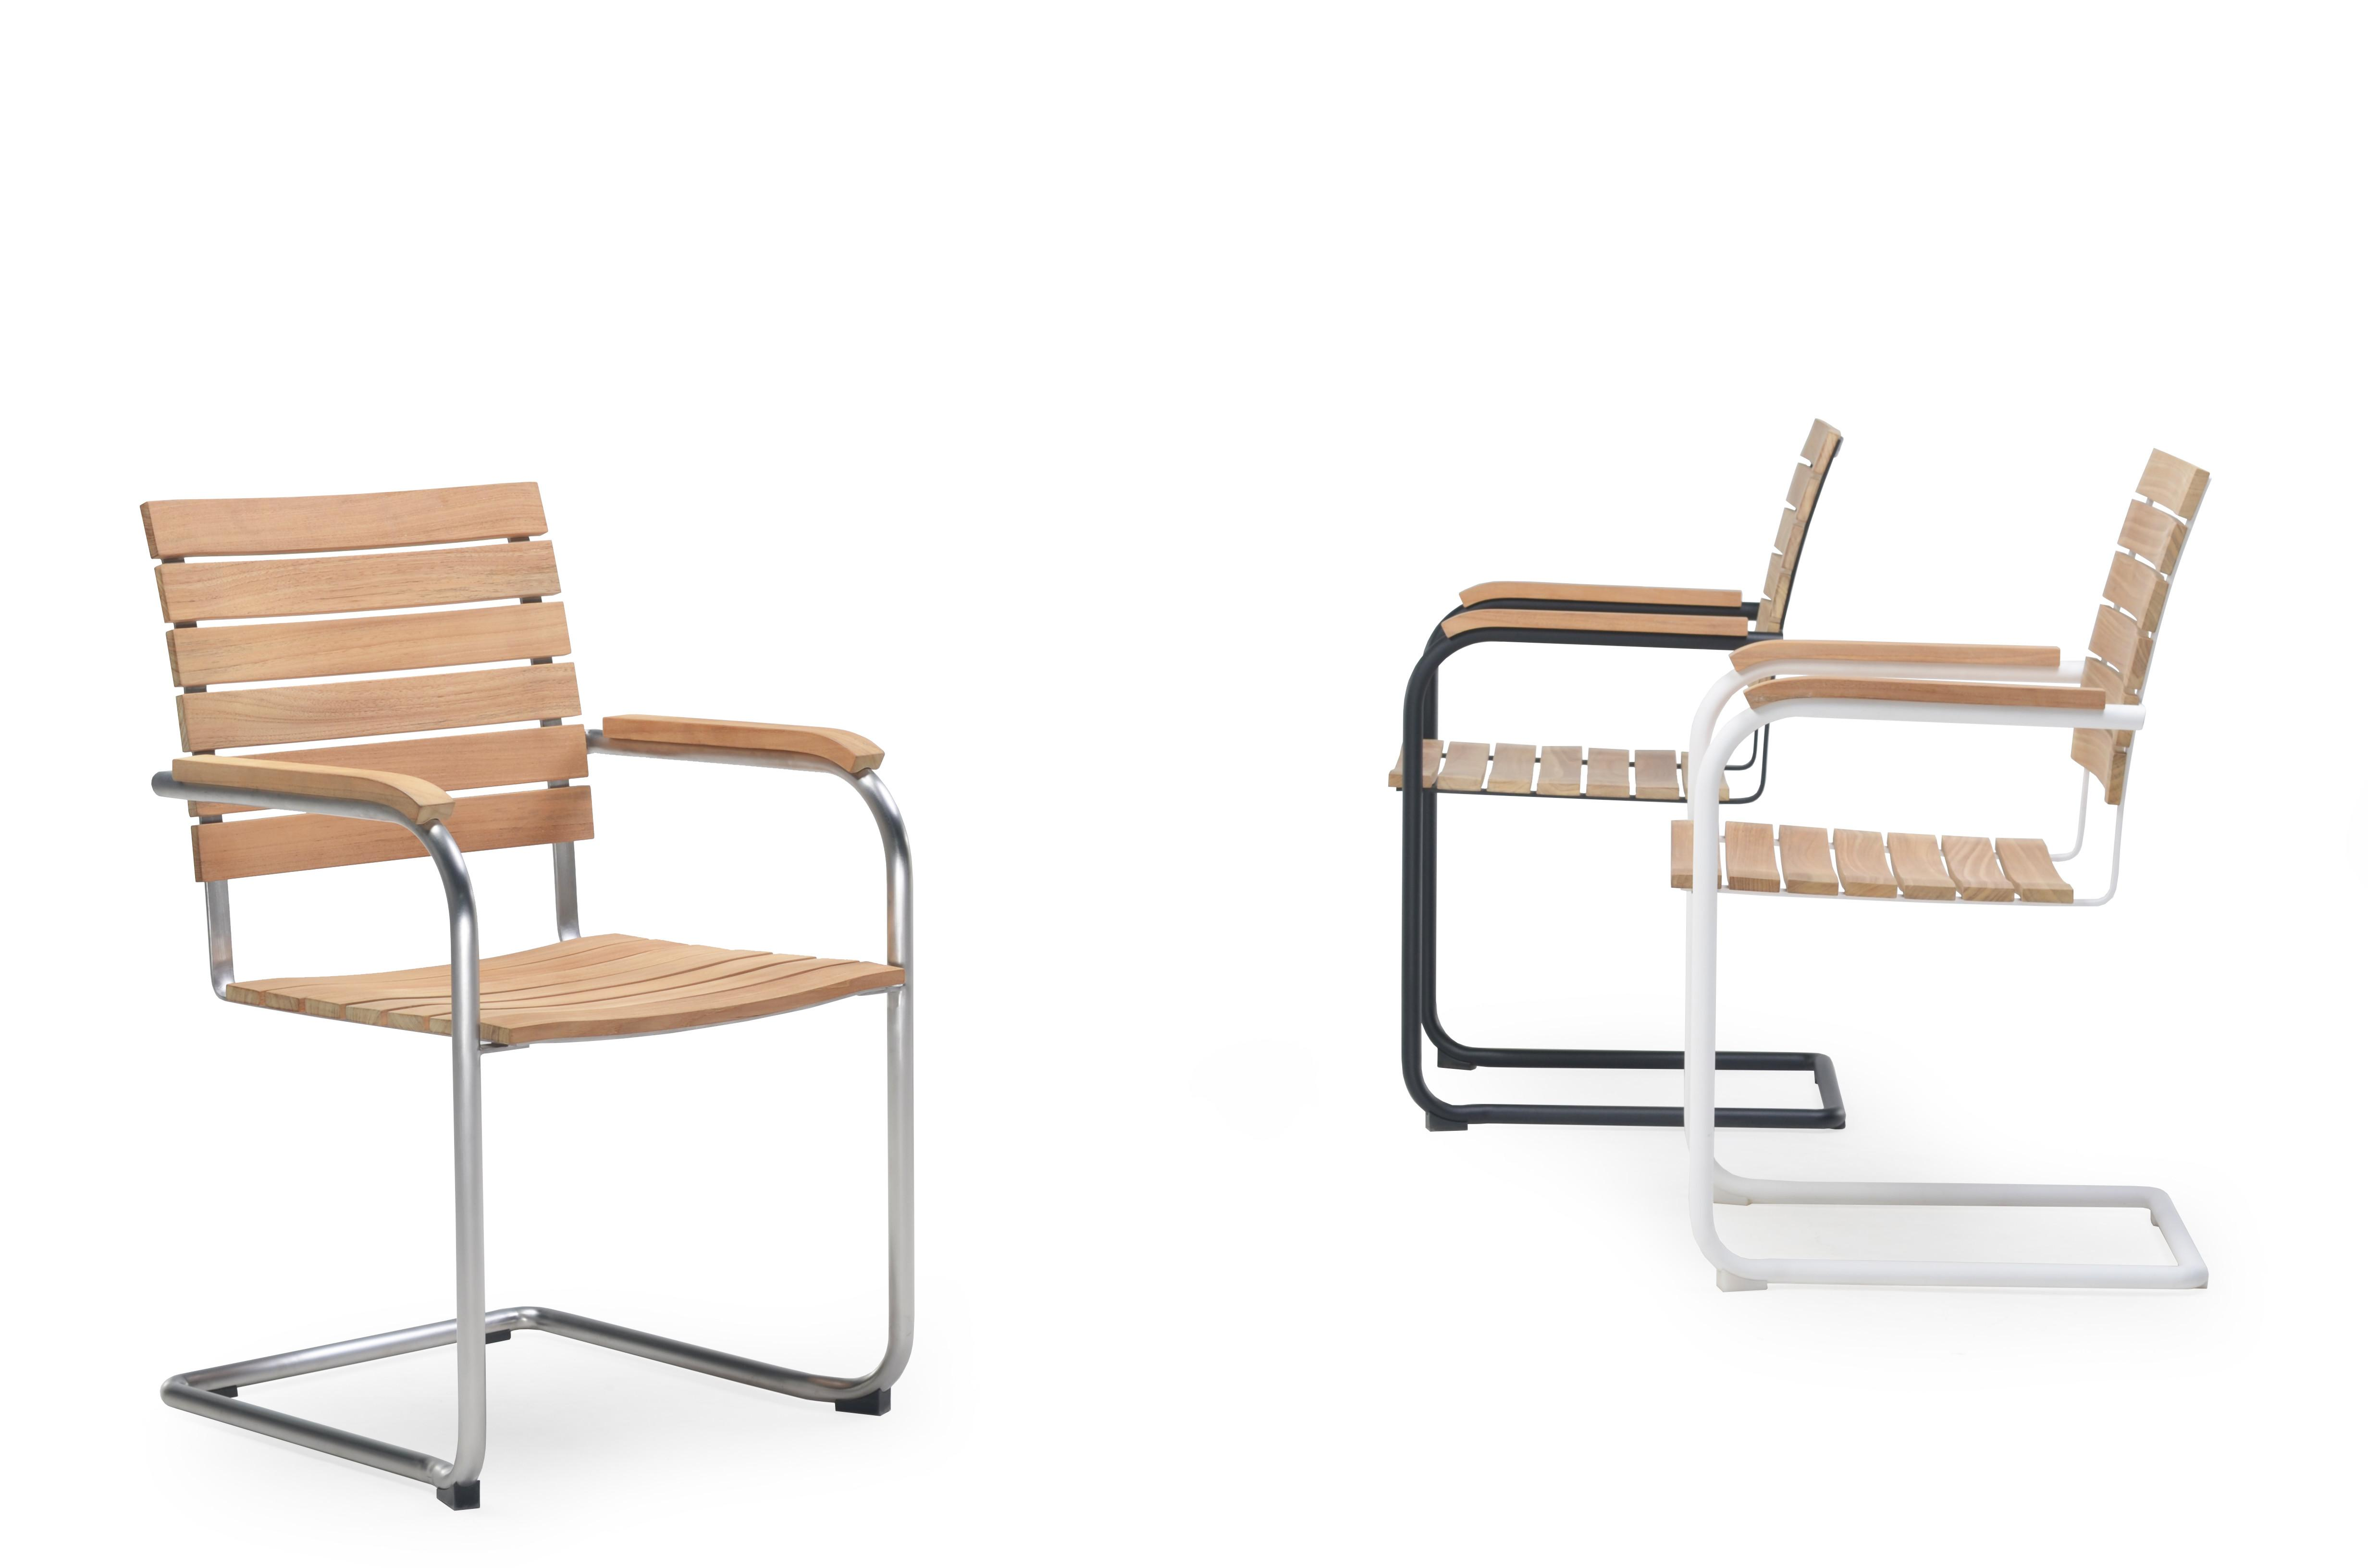 Abondo Cantilever Dining Chair Stellar Couture Outdoor